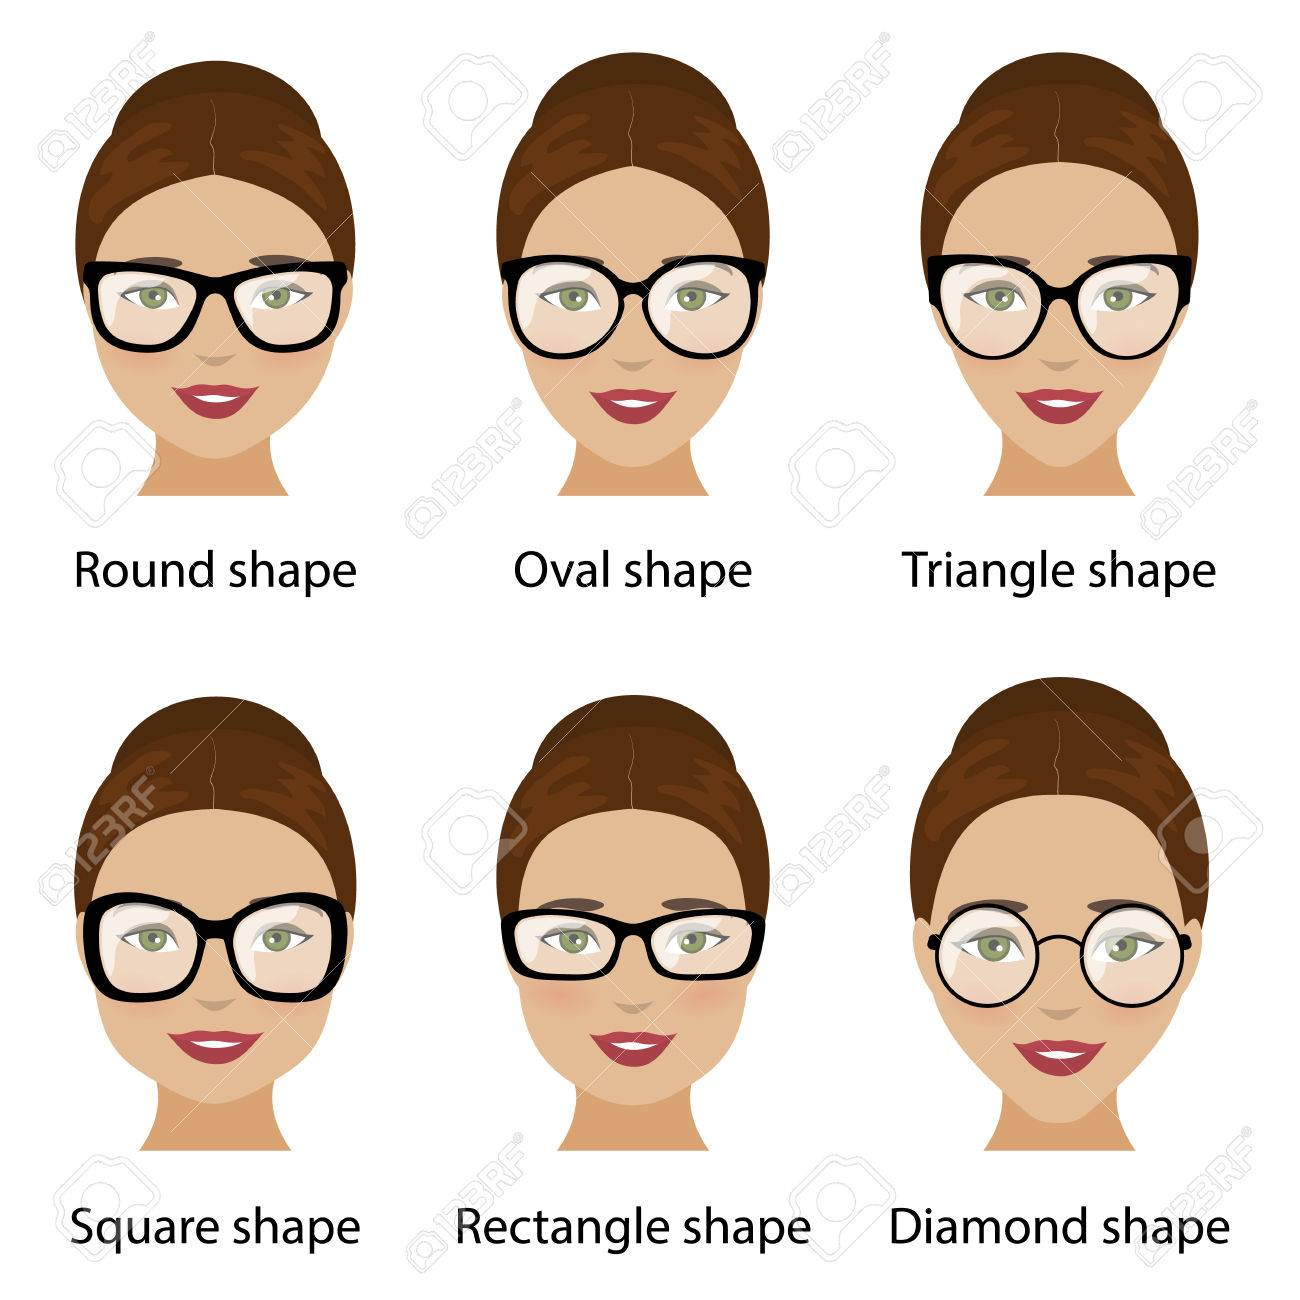 Spectacle Frames Shapes And Different Types Of Women Face Shapes ...